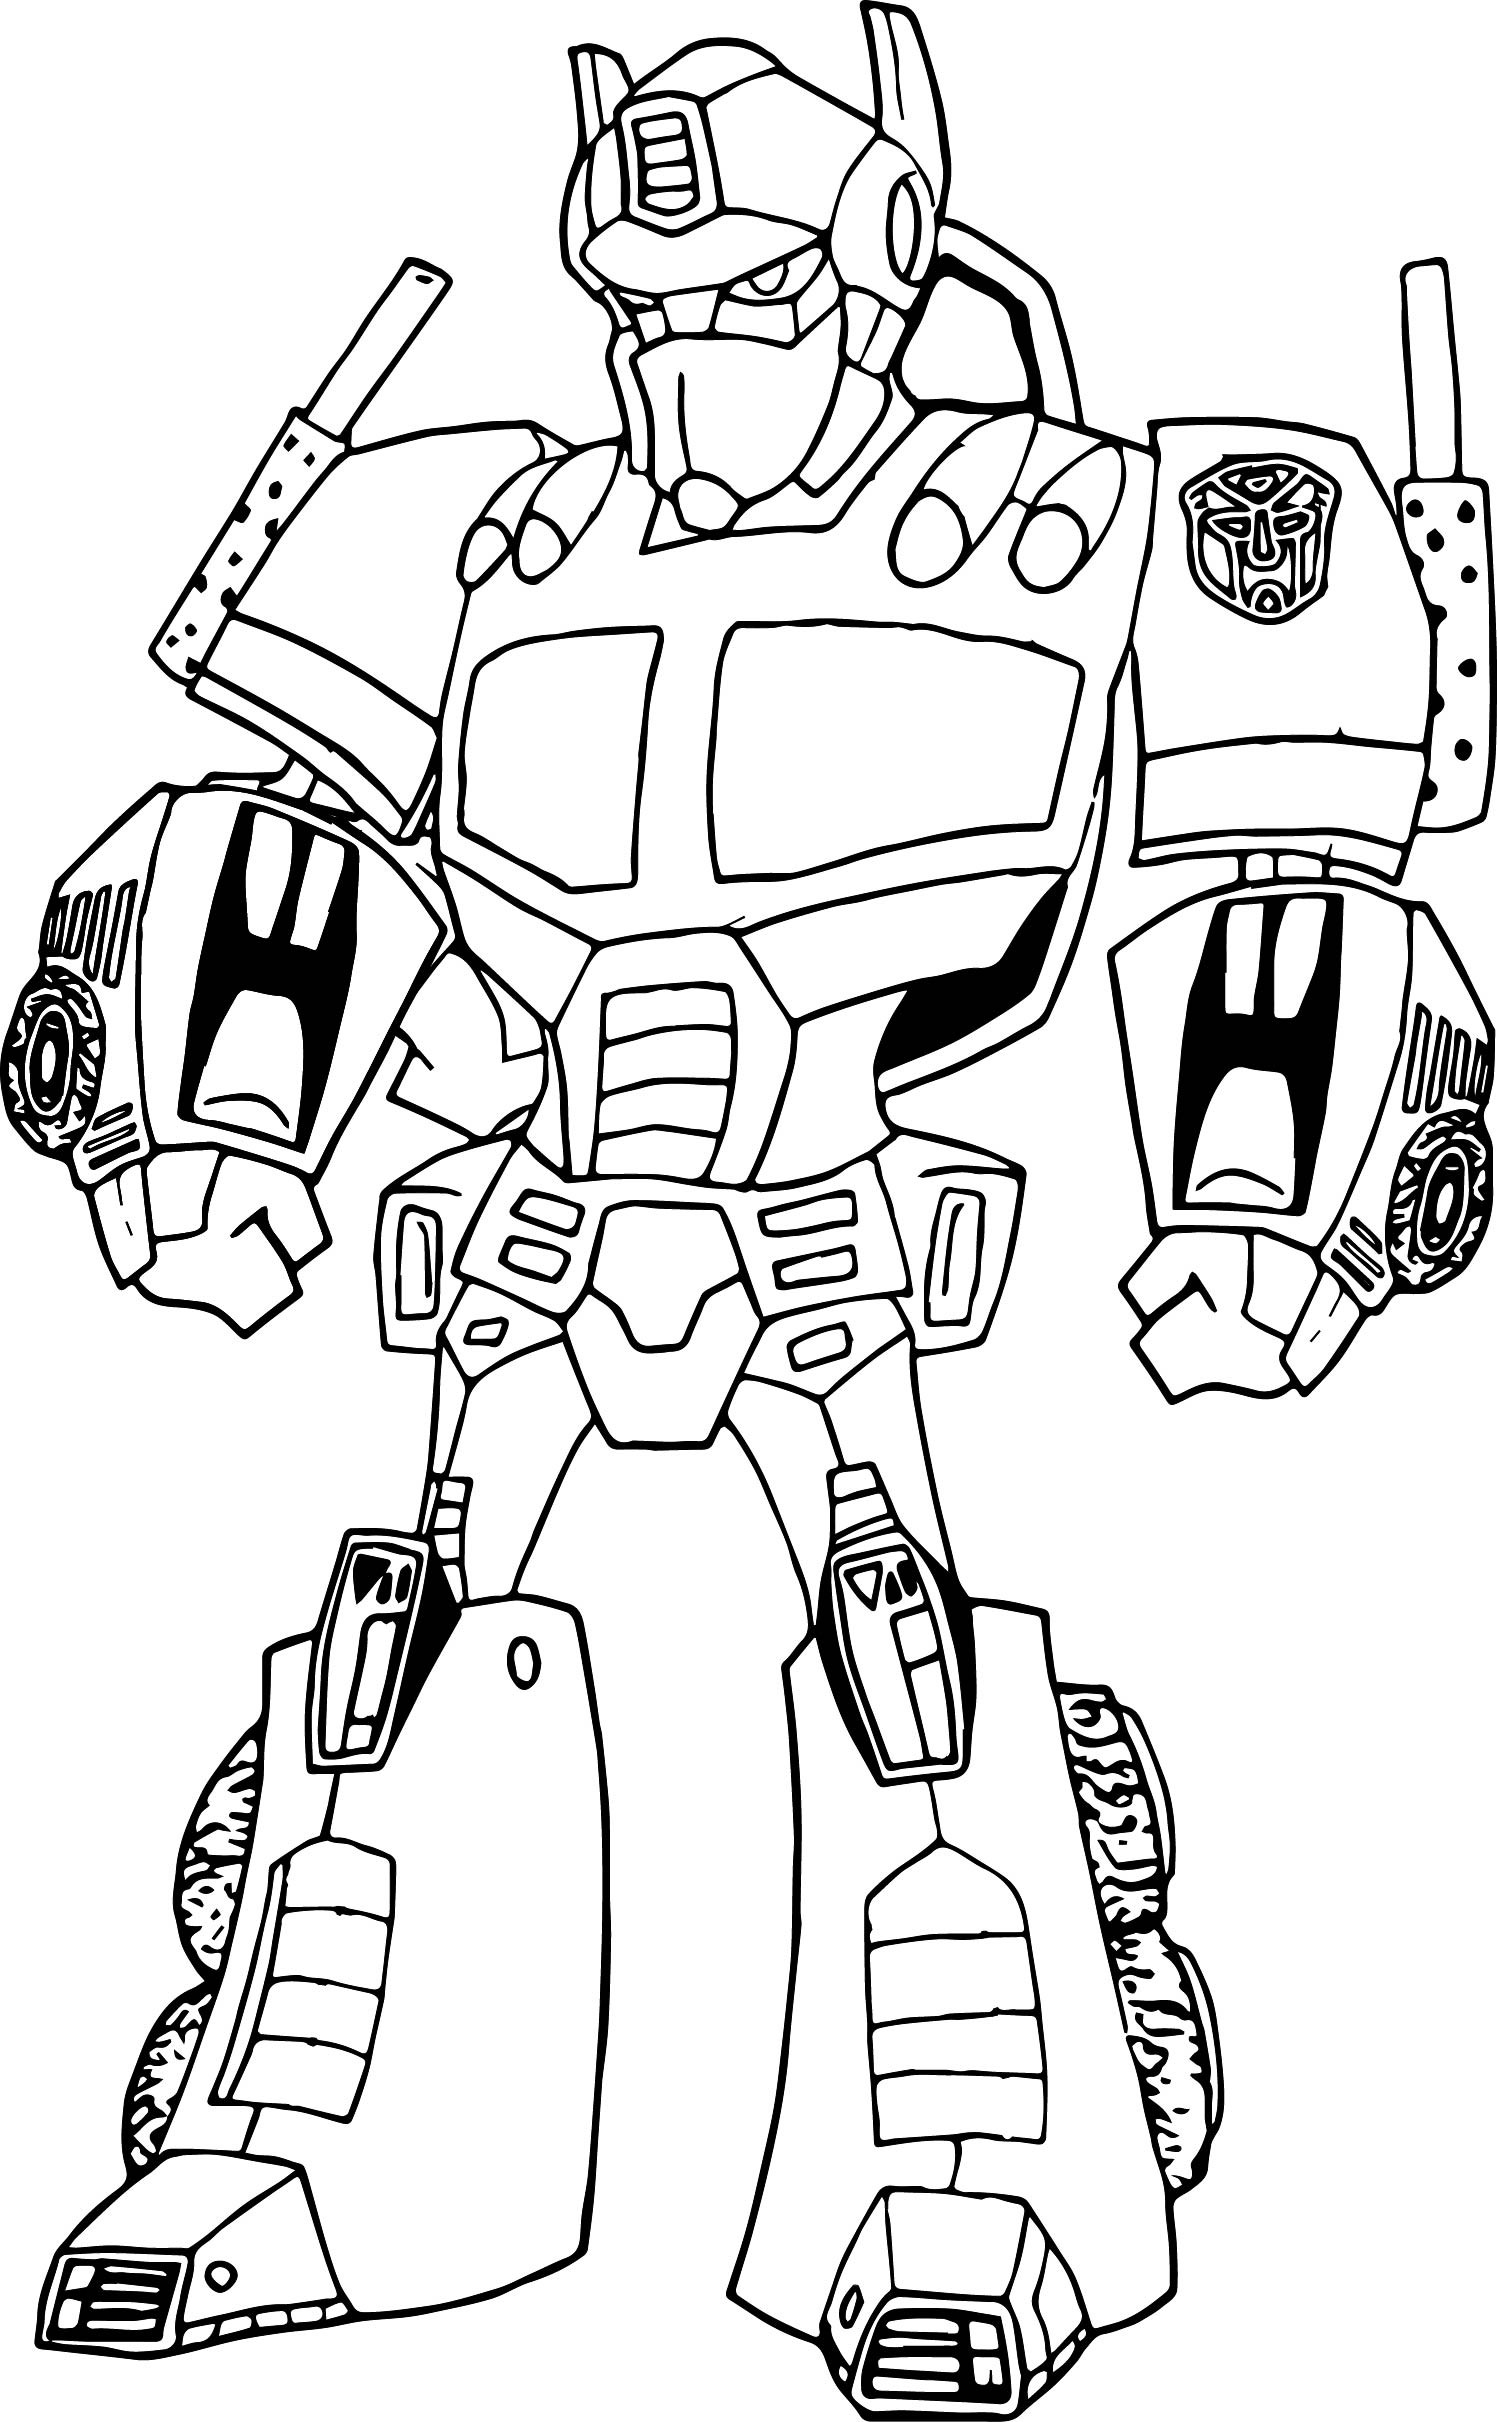 Real Steel Coloring Pages At Getcolorings